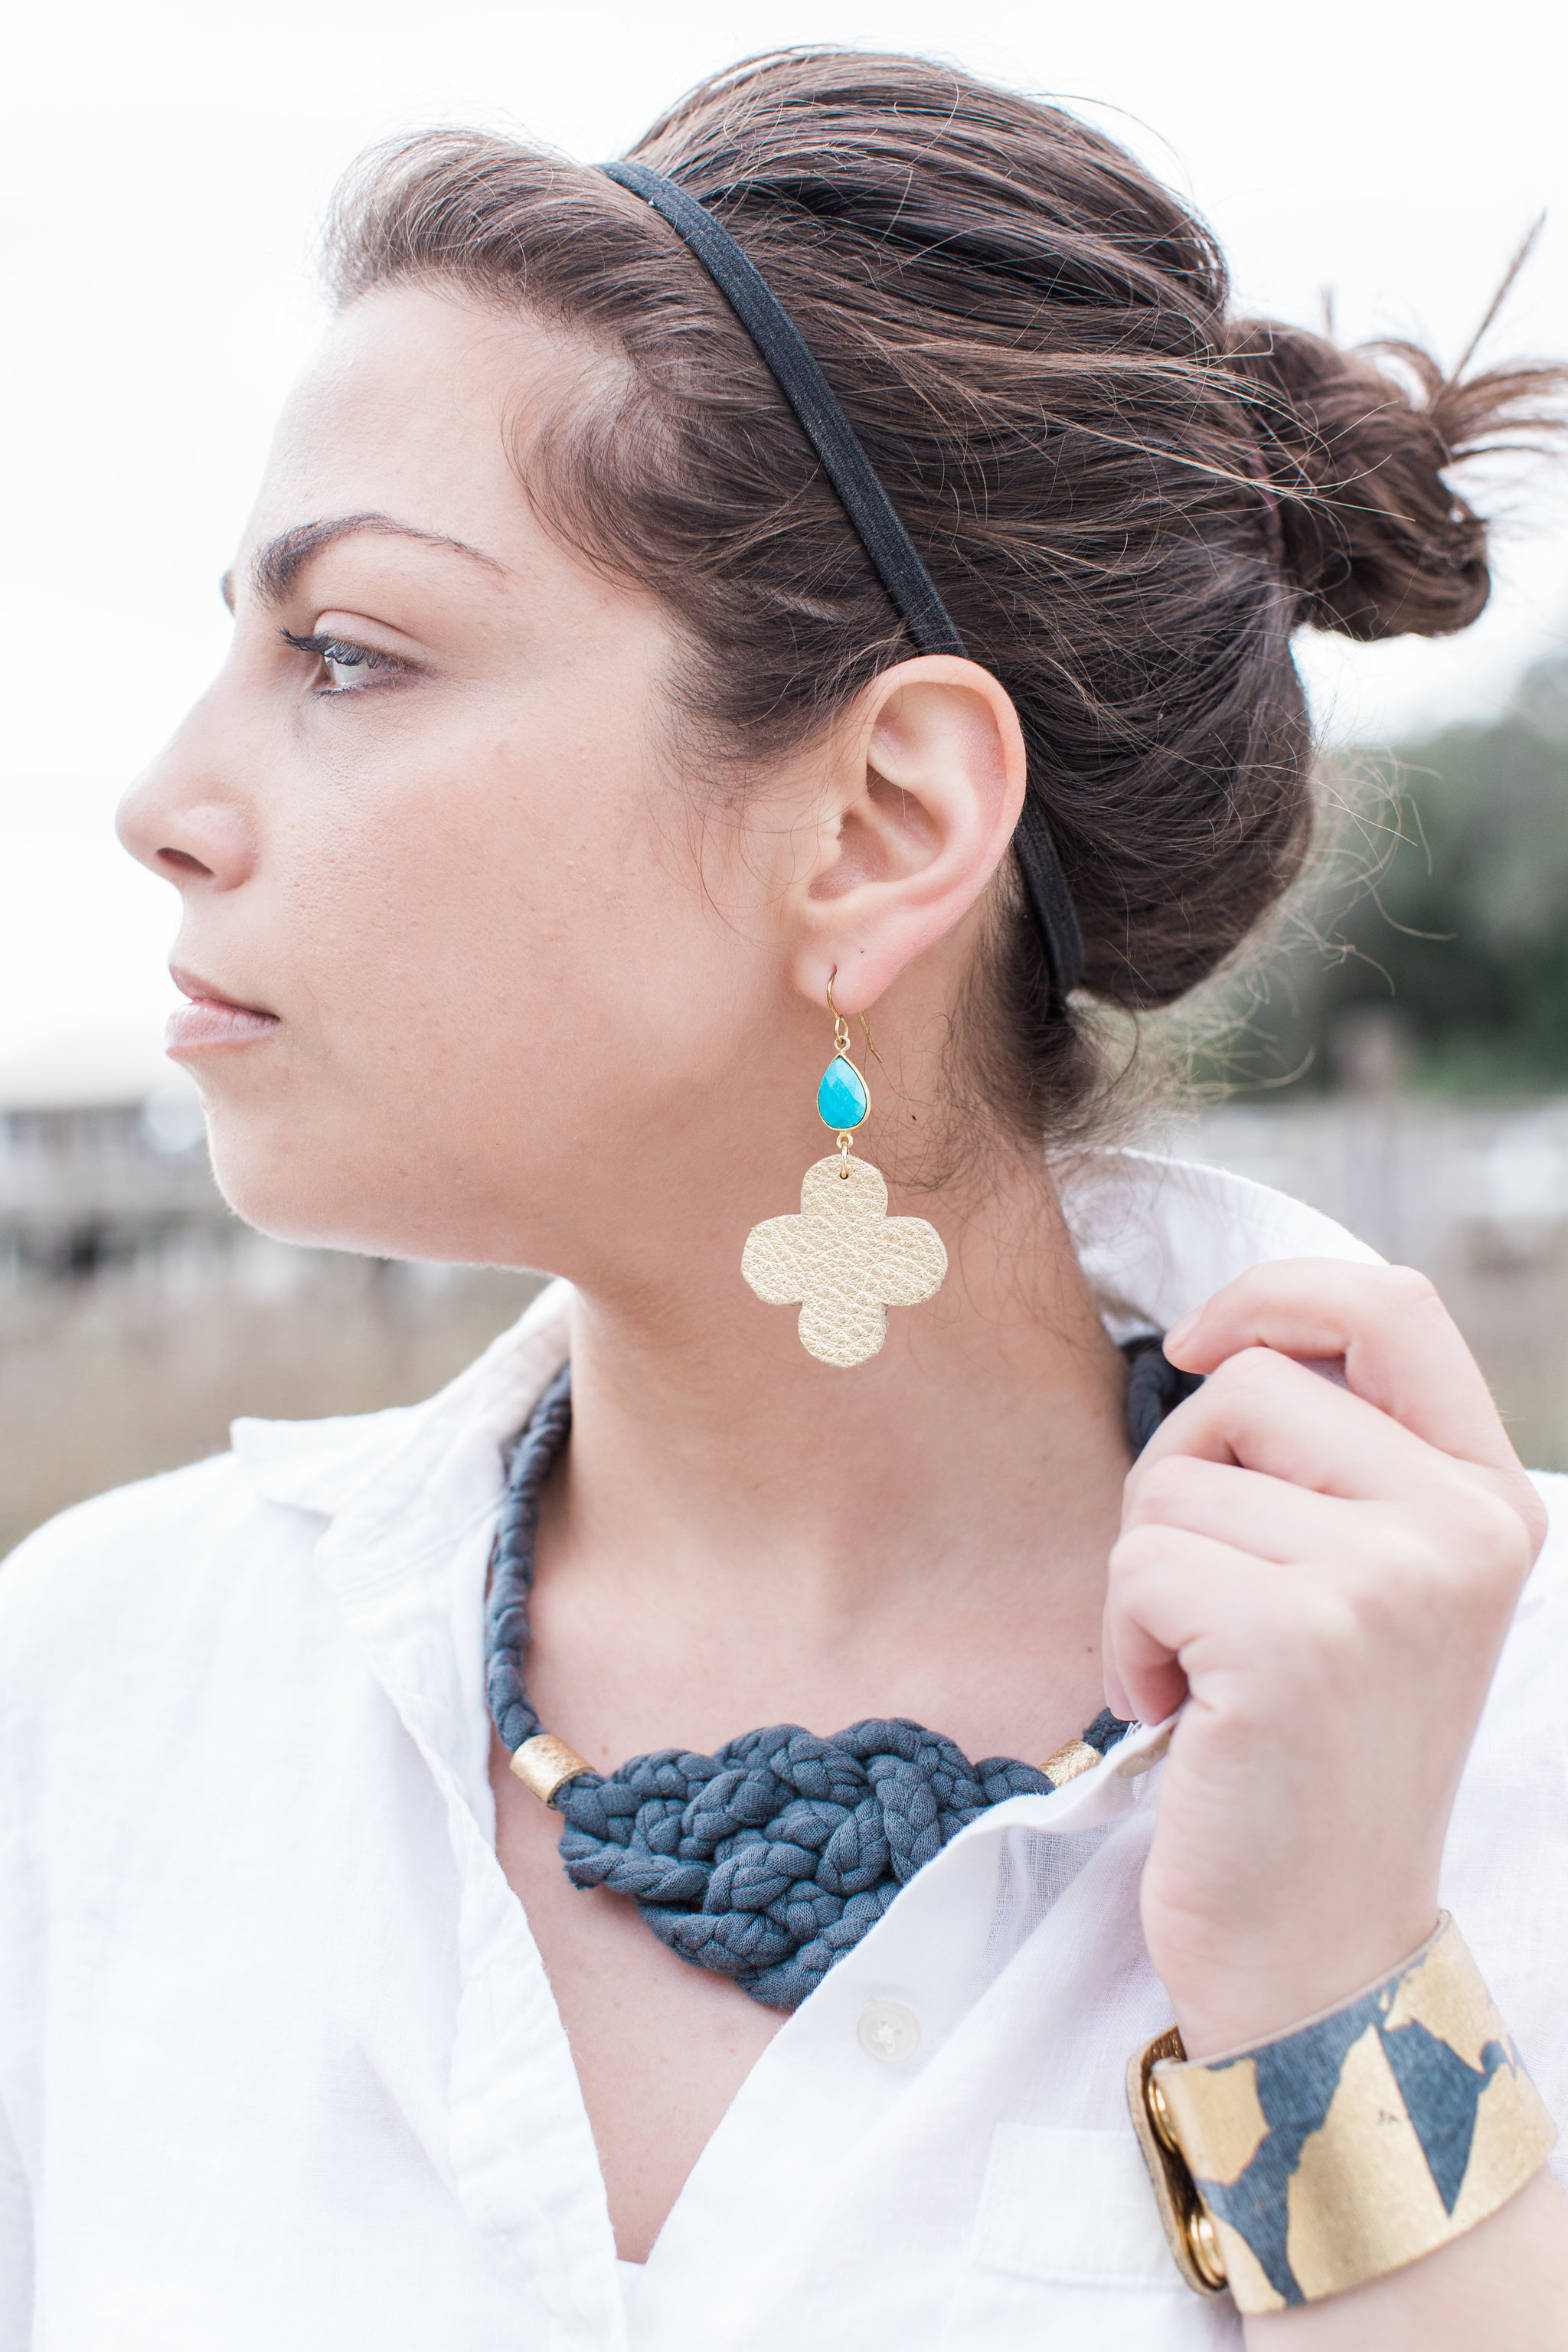 flourish-collaborative-lettees-brand-photography-jewelry2.png